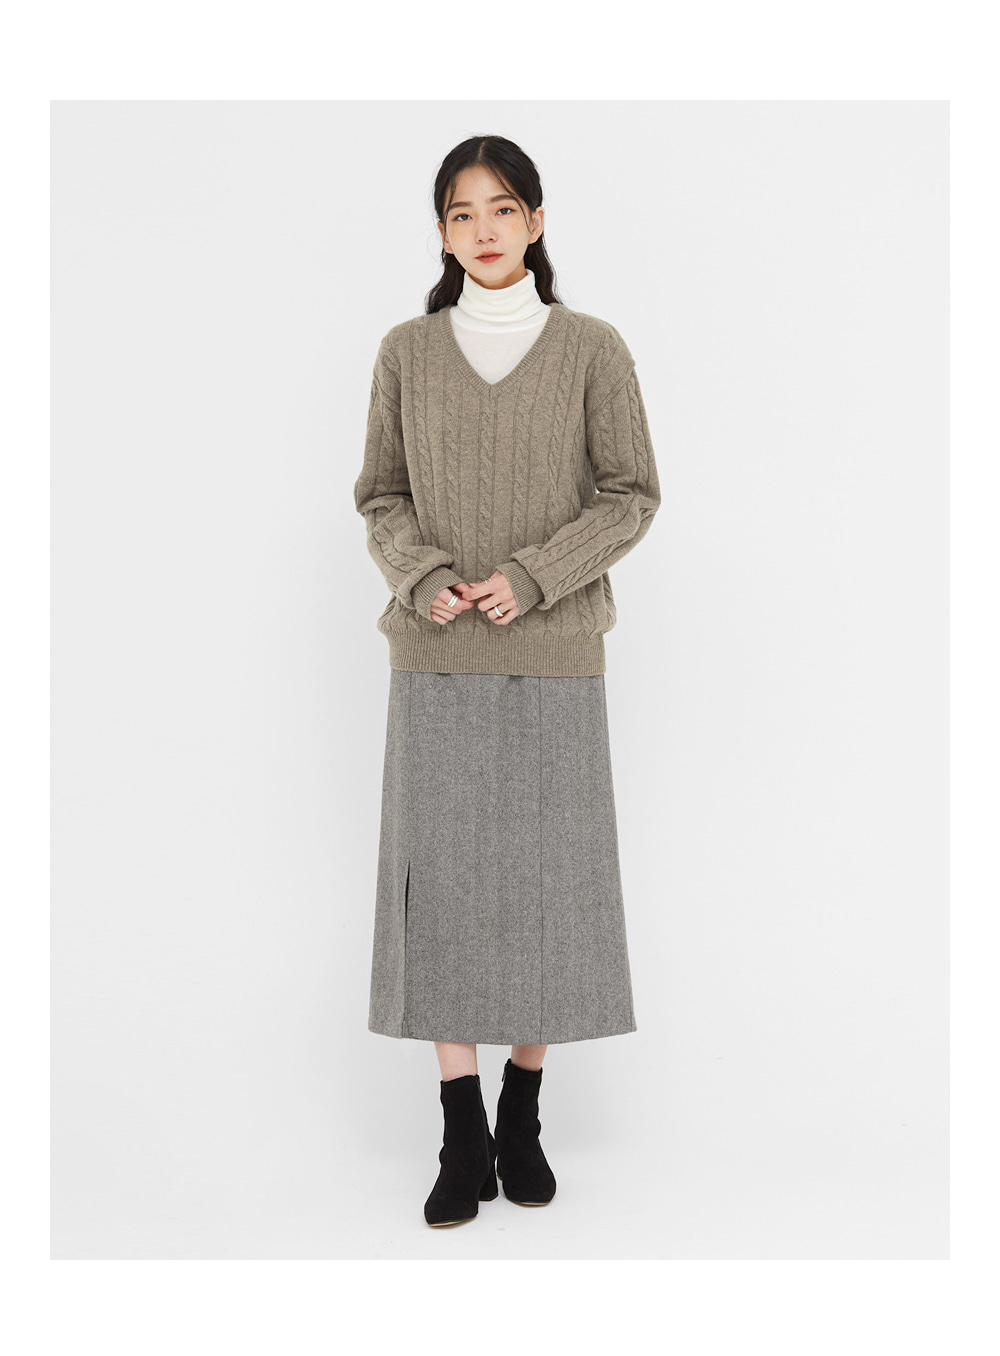 noble cable v-neck wool knit